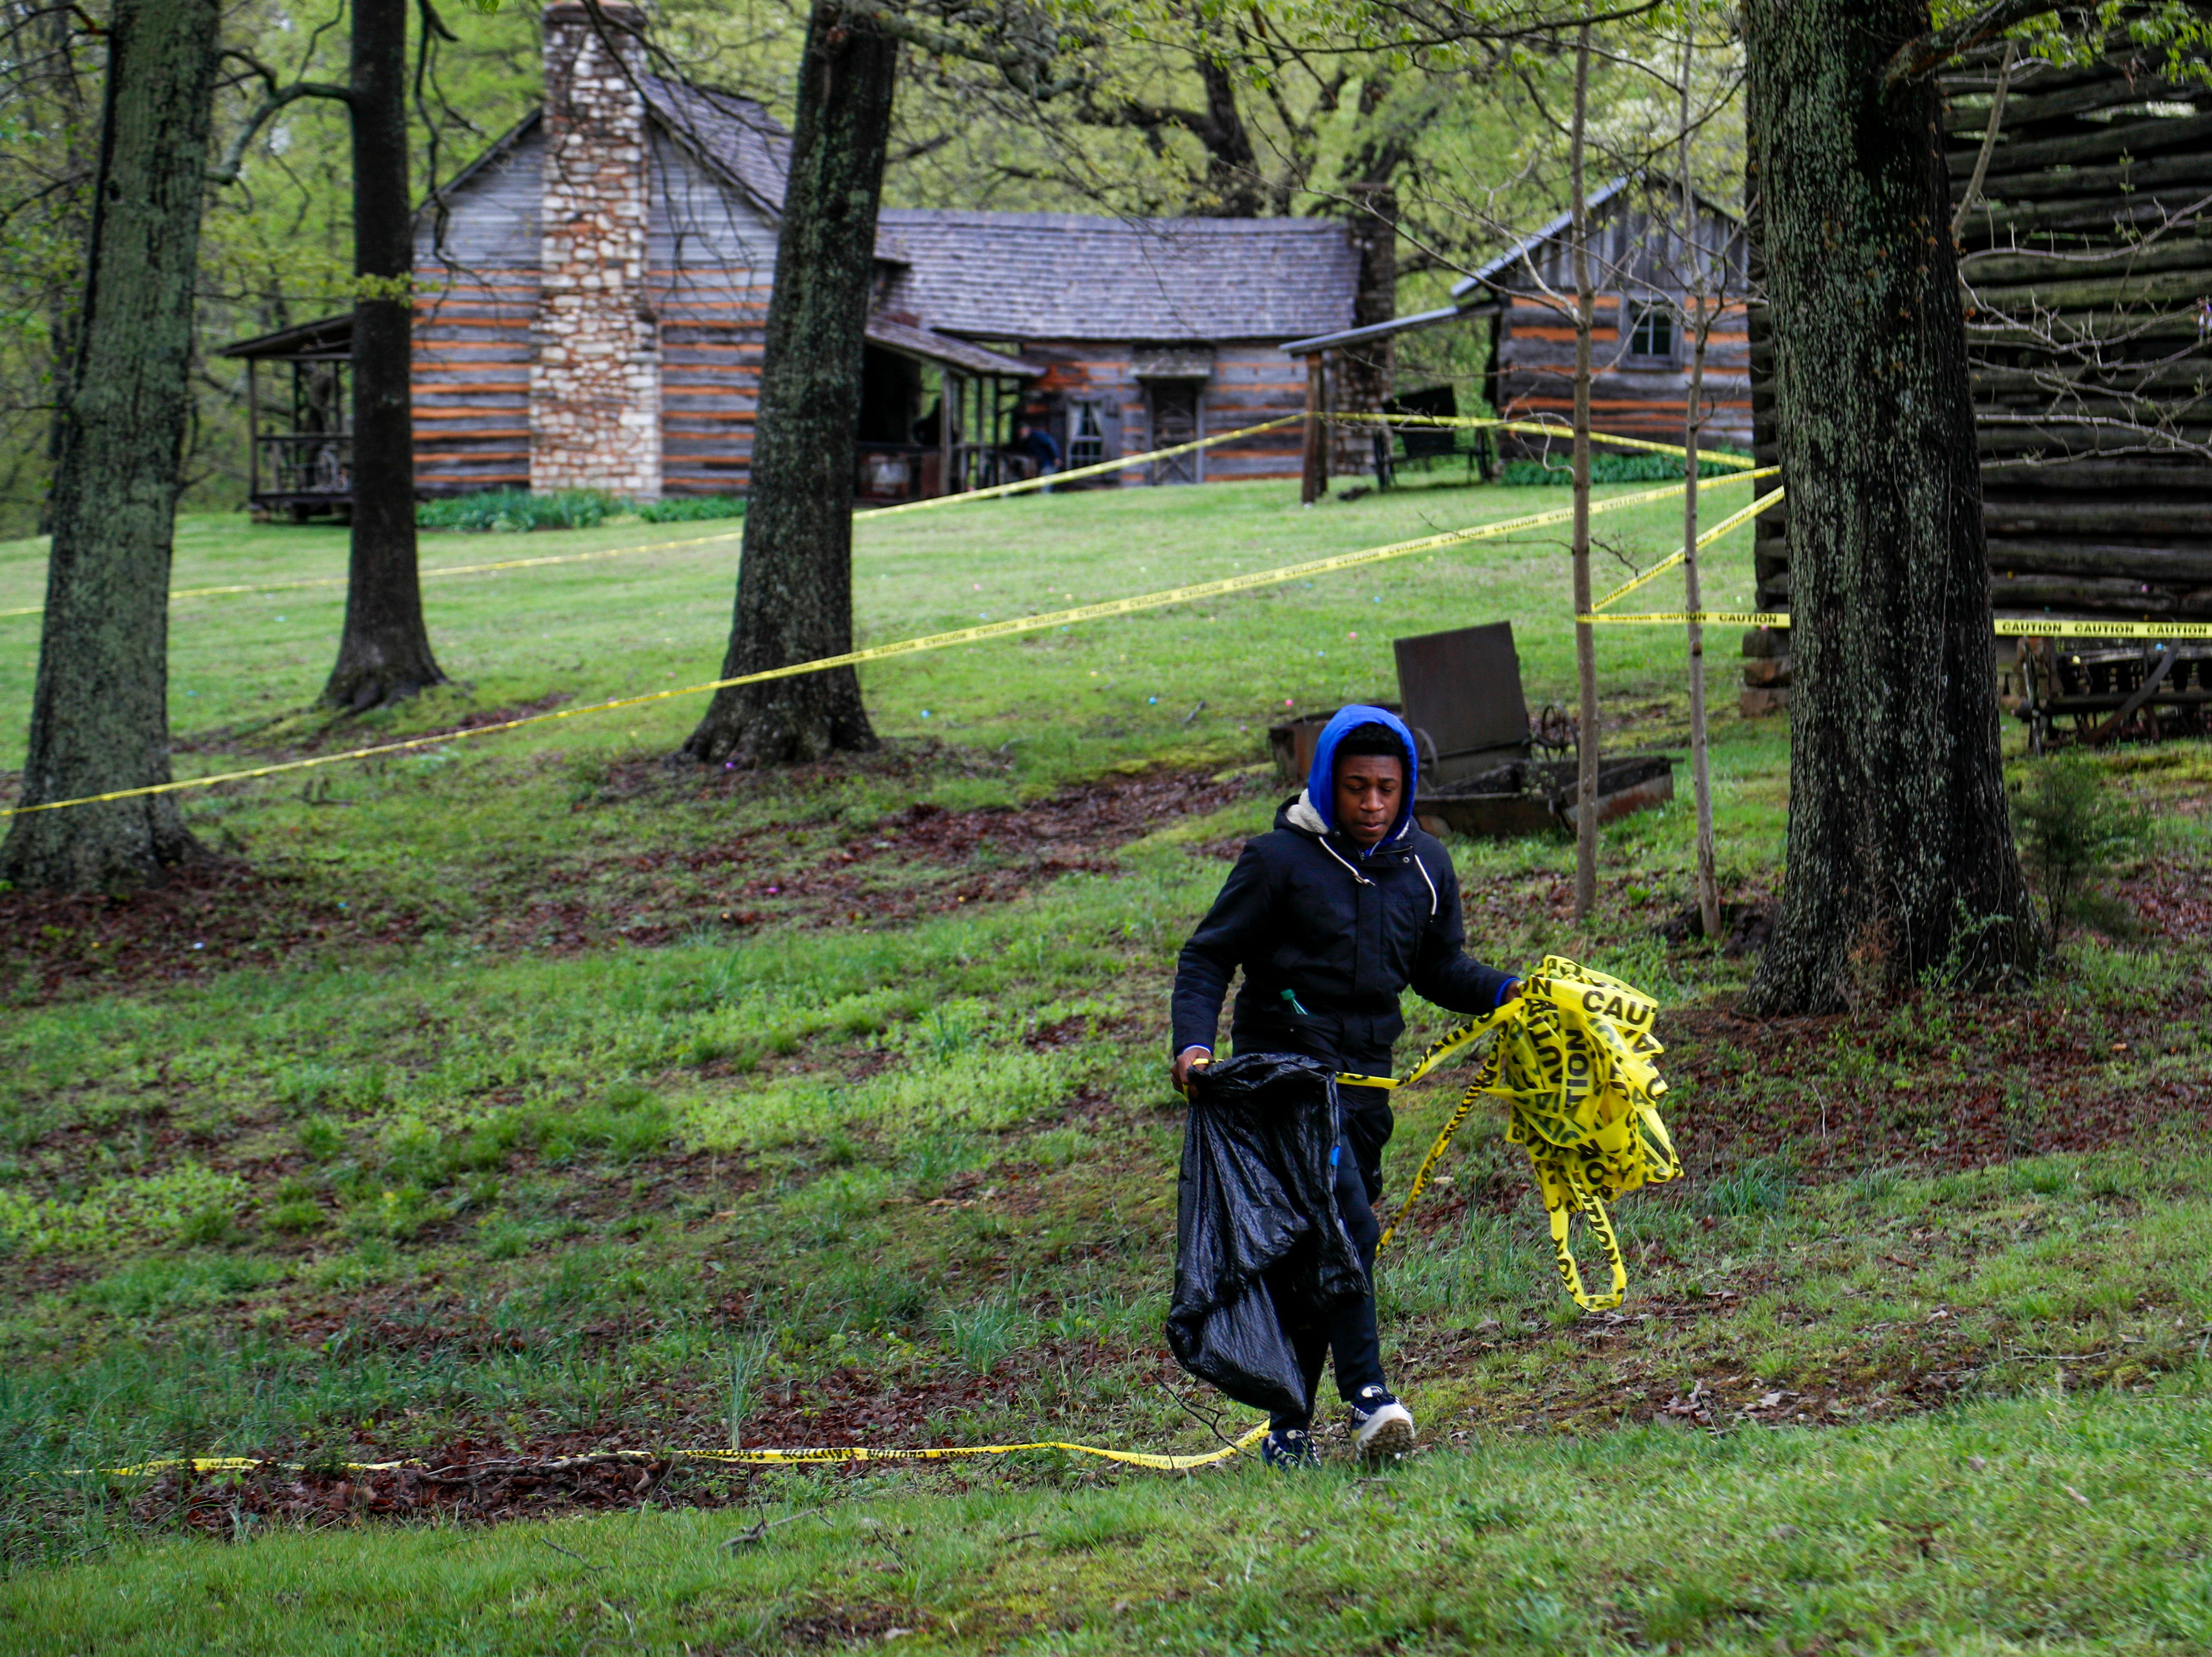 A volunteer removes barrier tape that was used to mark off egg hunts for different age groups at the annual Easter egg hunts at Historic Collinsville in Clarksville, Tenn., on Saturday, April 20, 2019.